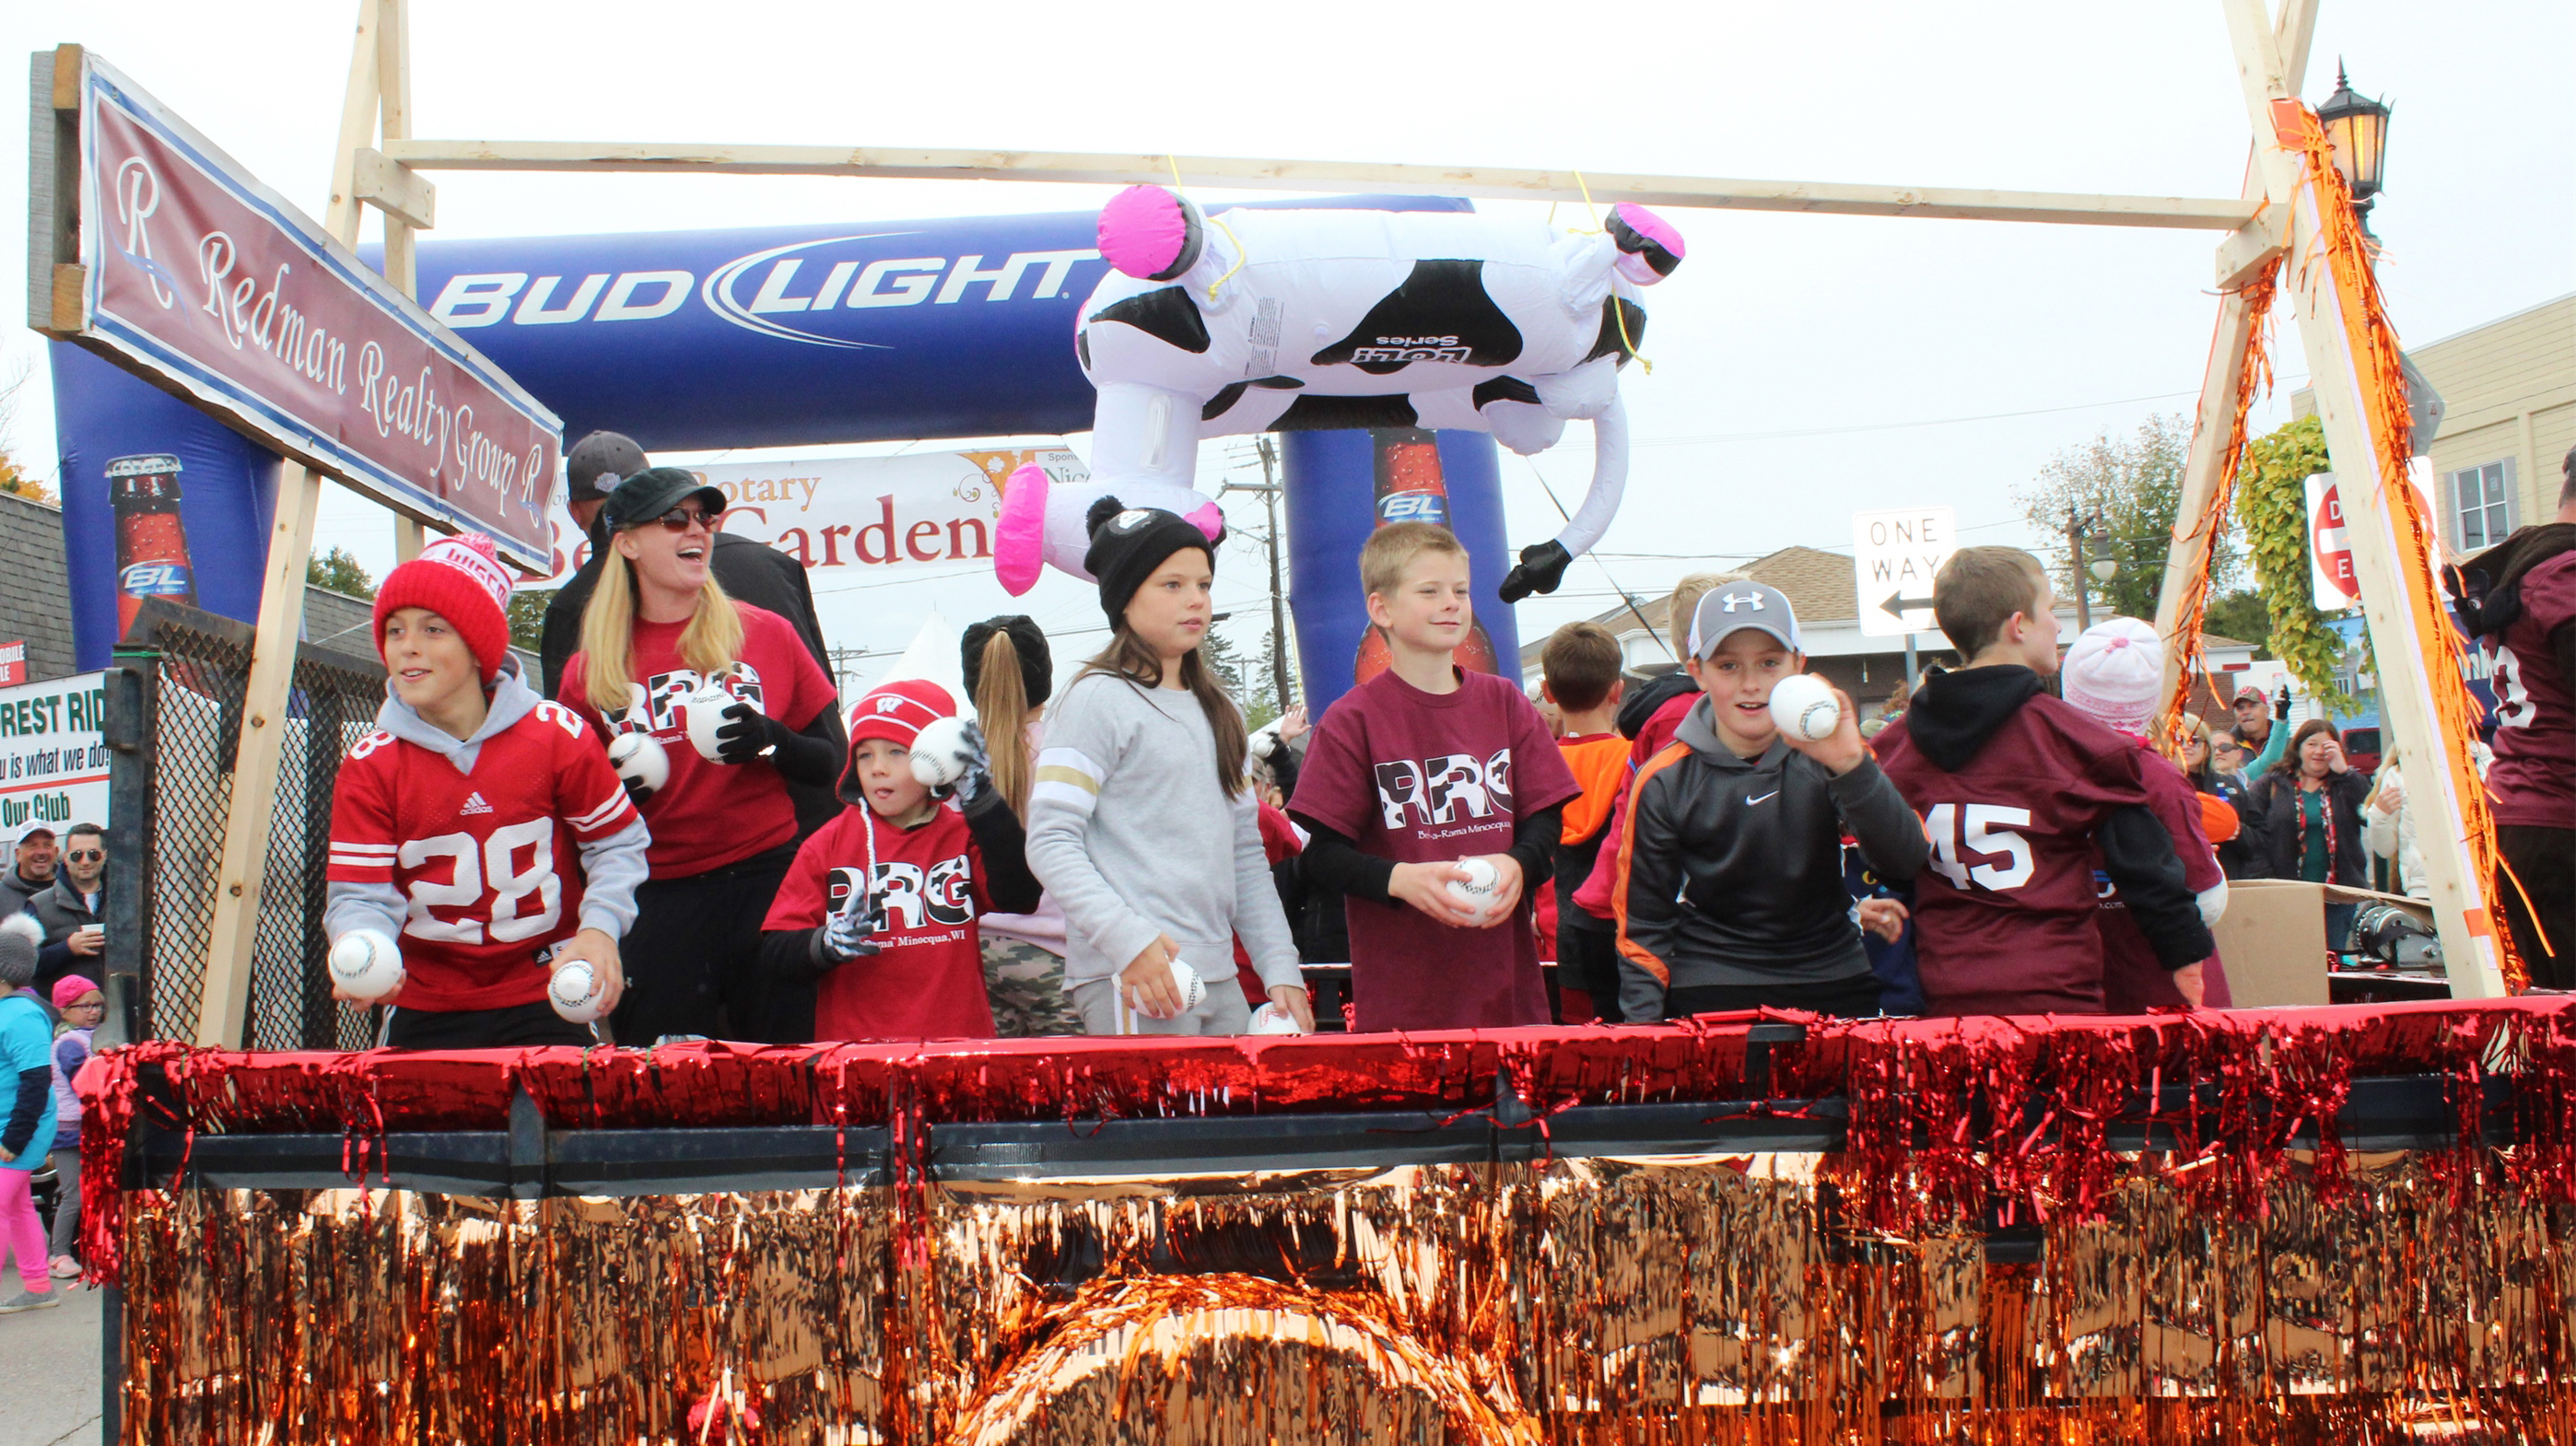 In Minocqua, riders on the Redman Realty float tossed footballs to spectators at the Beef-A-Rama parade. Kim Johnson photo